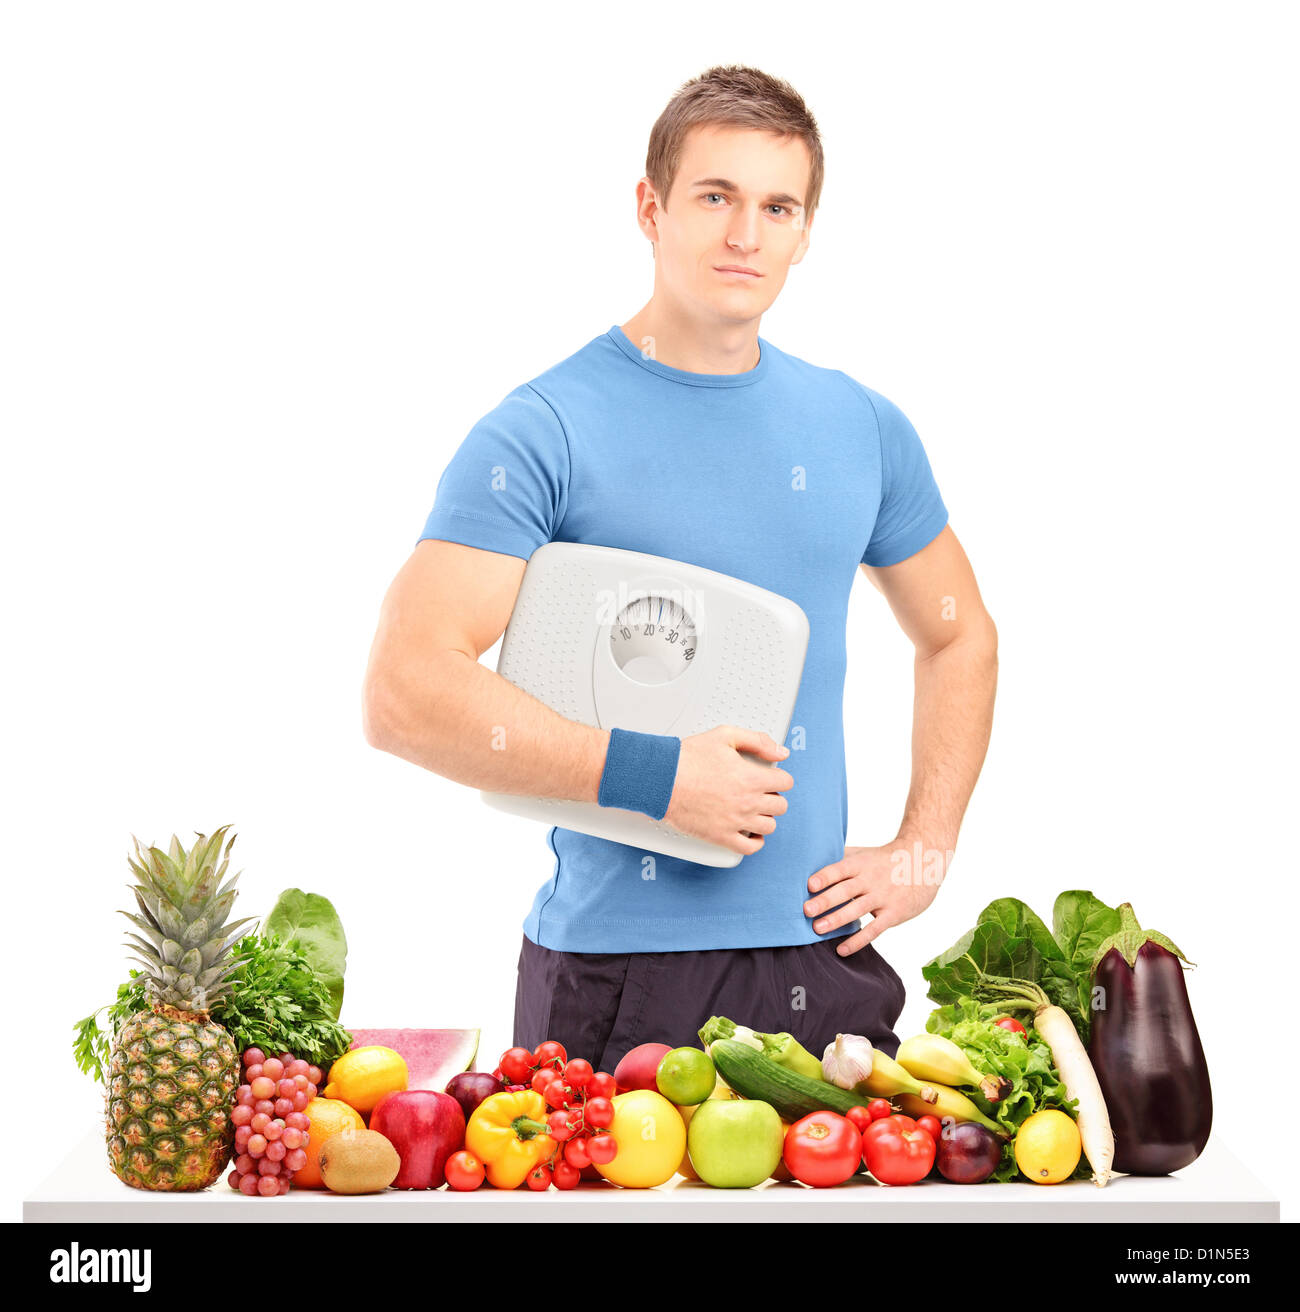 A male athlete holding a weight scale behind a table full of fruits and vegetables isolated on white background Stock Photo